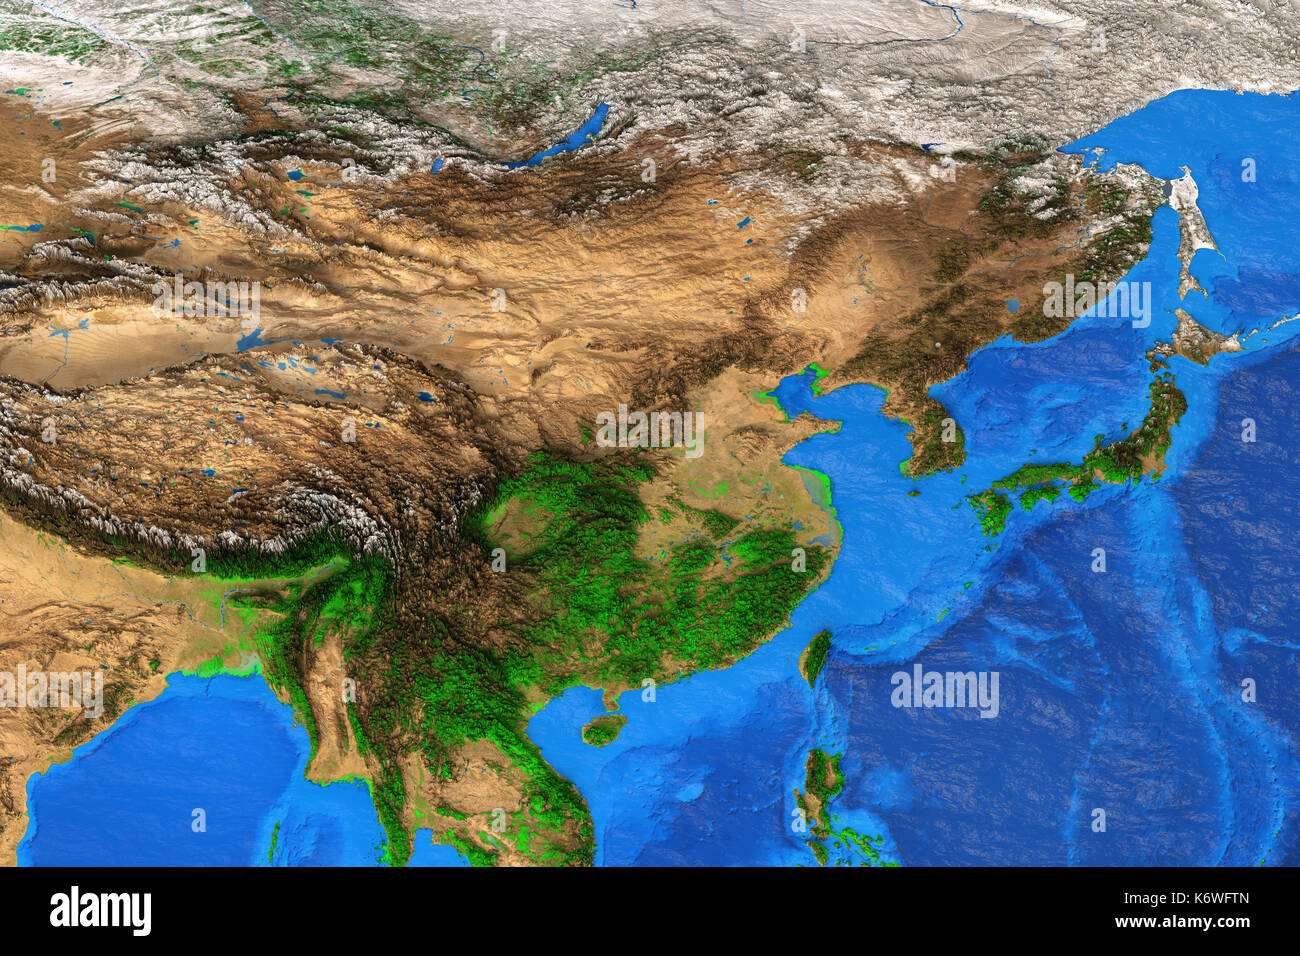 Detailed Map Of Asia.Physical Map Of East Asia Detailed Satellite View Of The Earth And